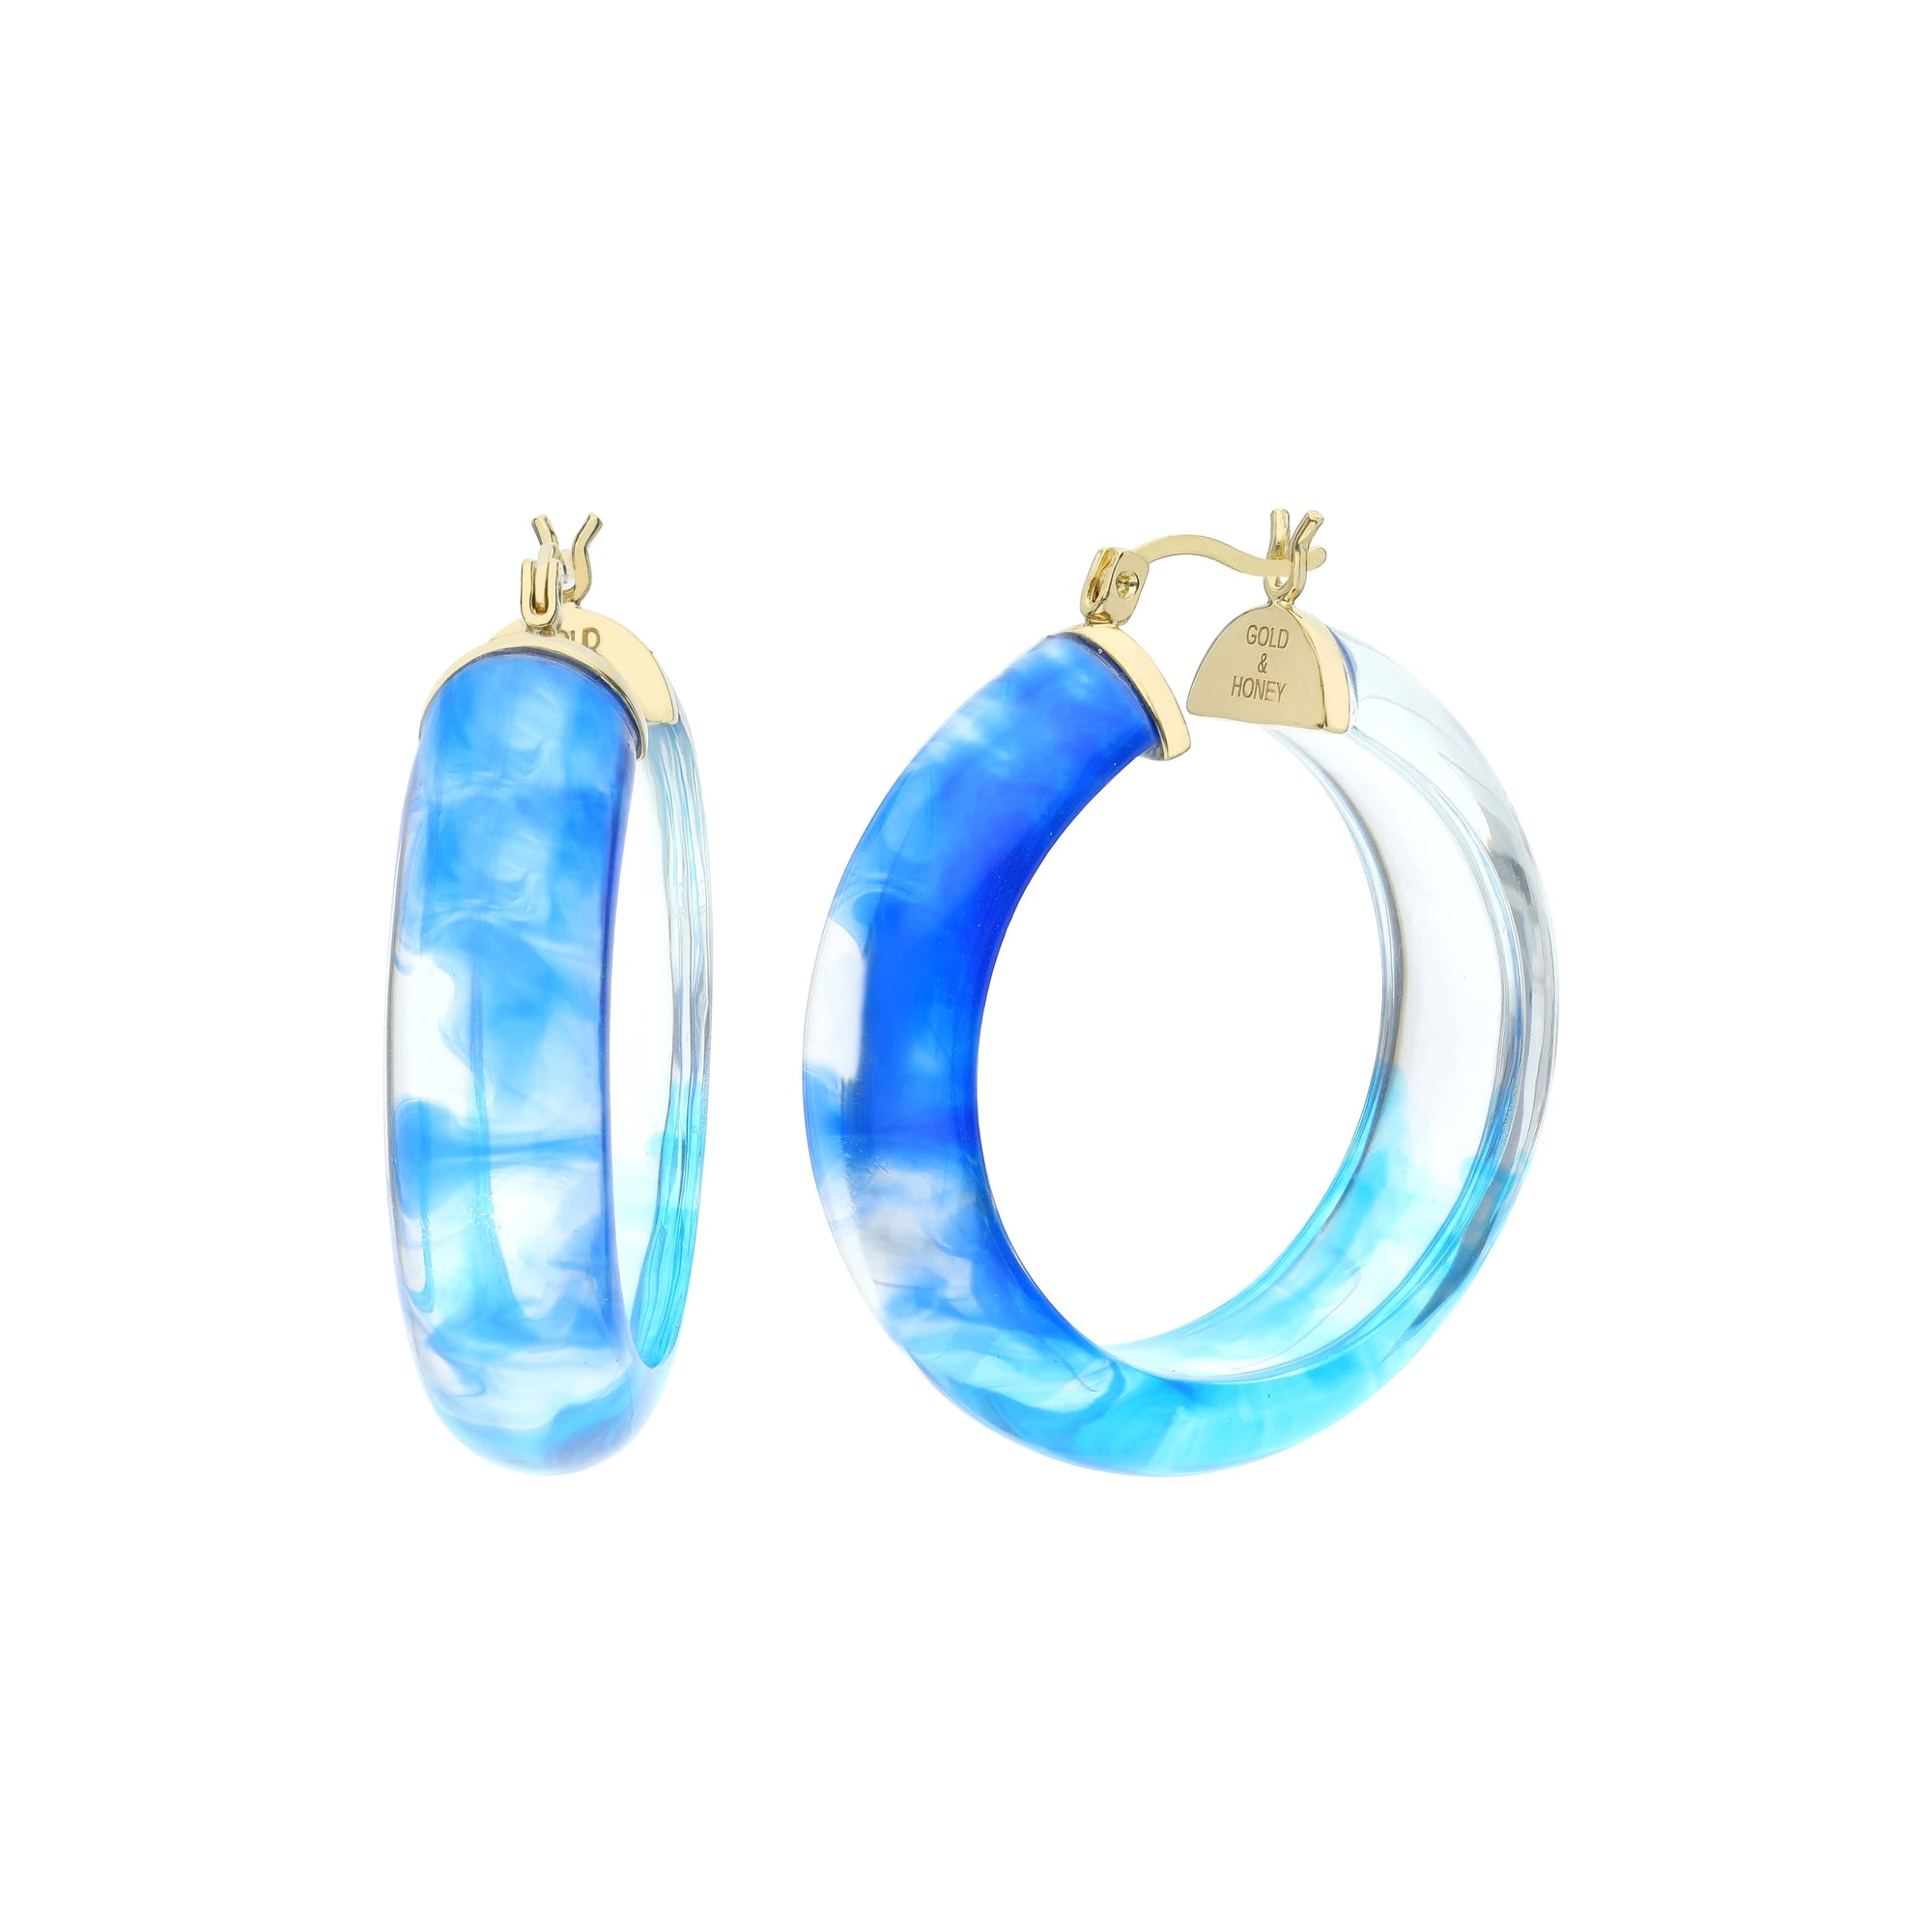 Ombré Round Lucite Earrings - Wide